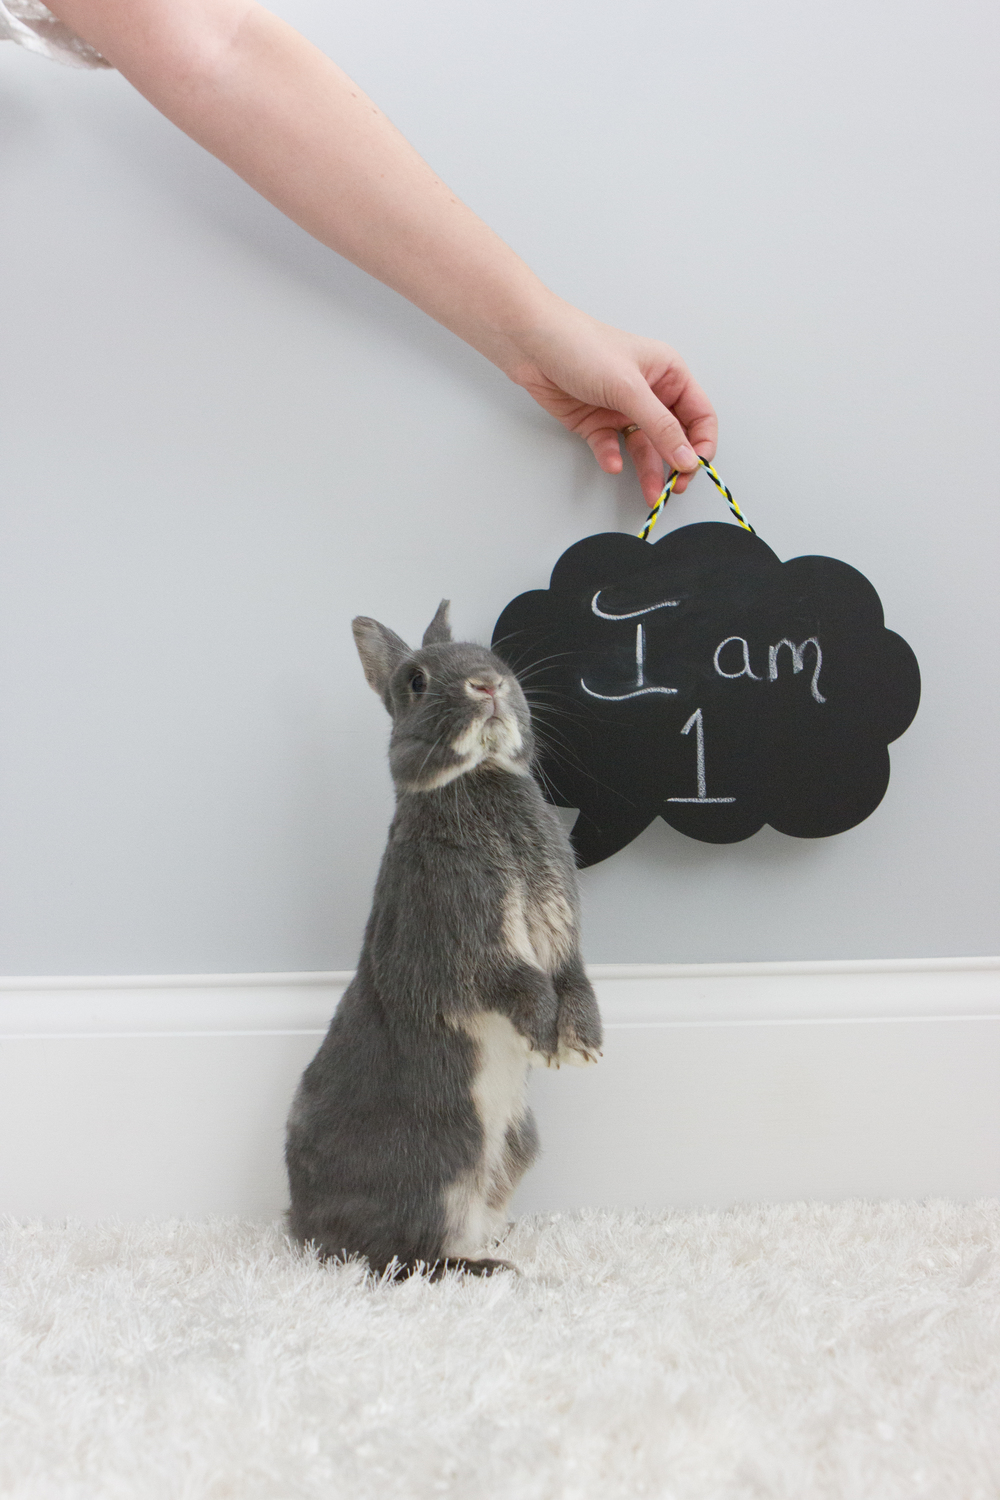 Bunny is One Long Island Pet Photography | michruby.com